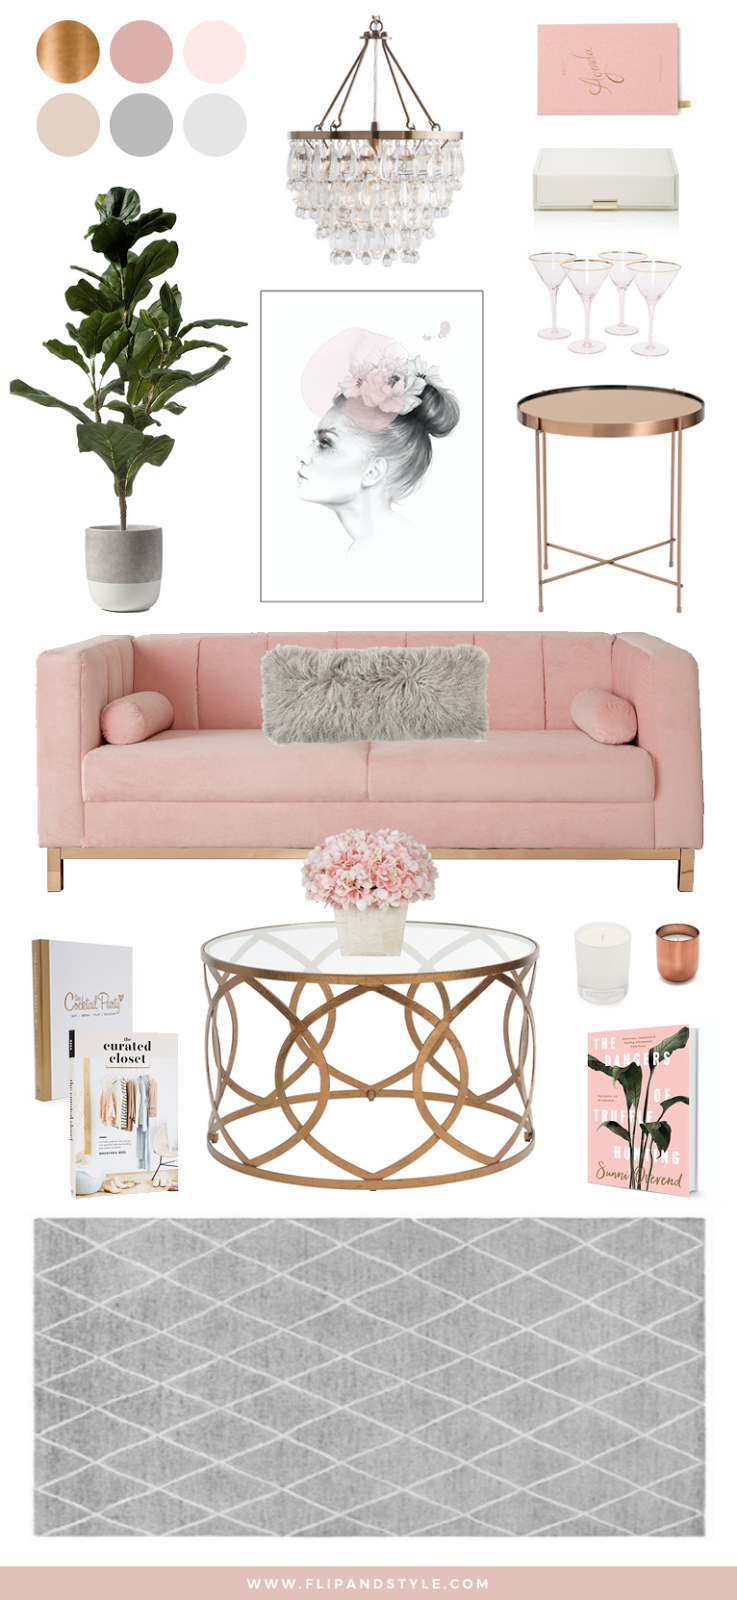 Blush copper grey home decor interior inspiration for Interior motives accents and designs